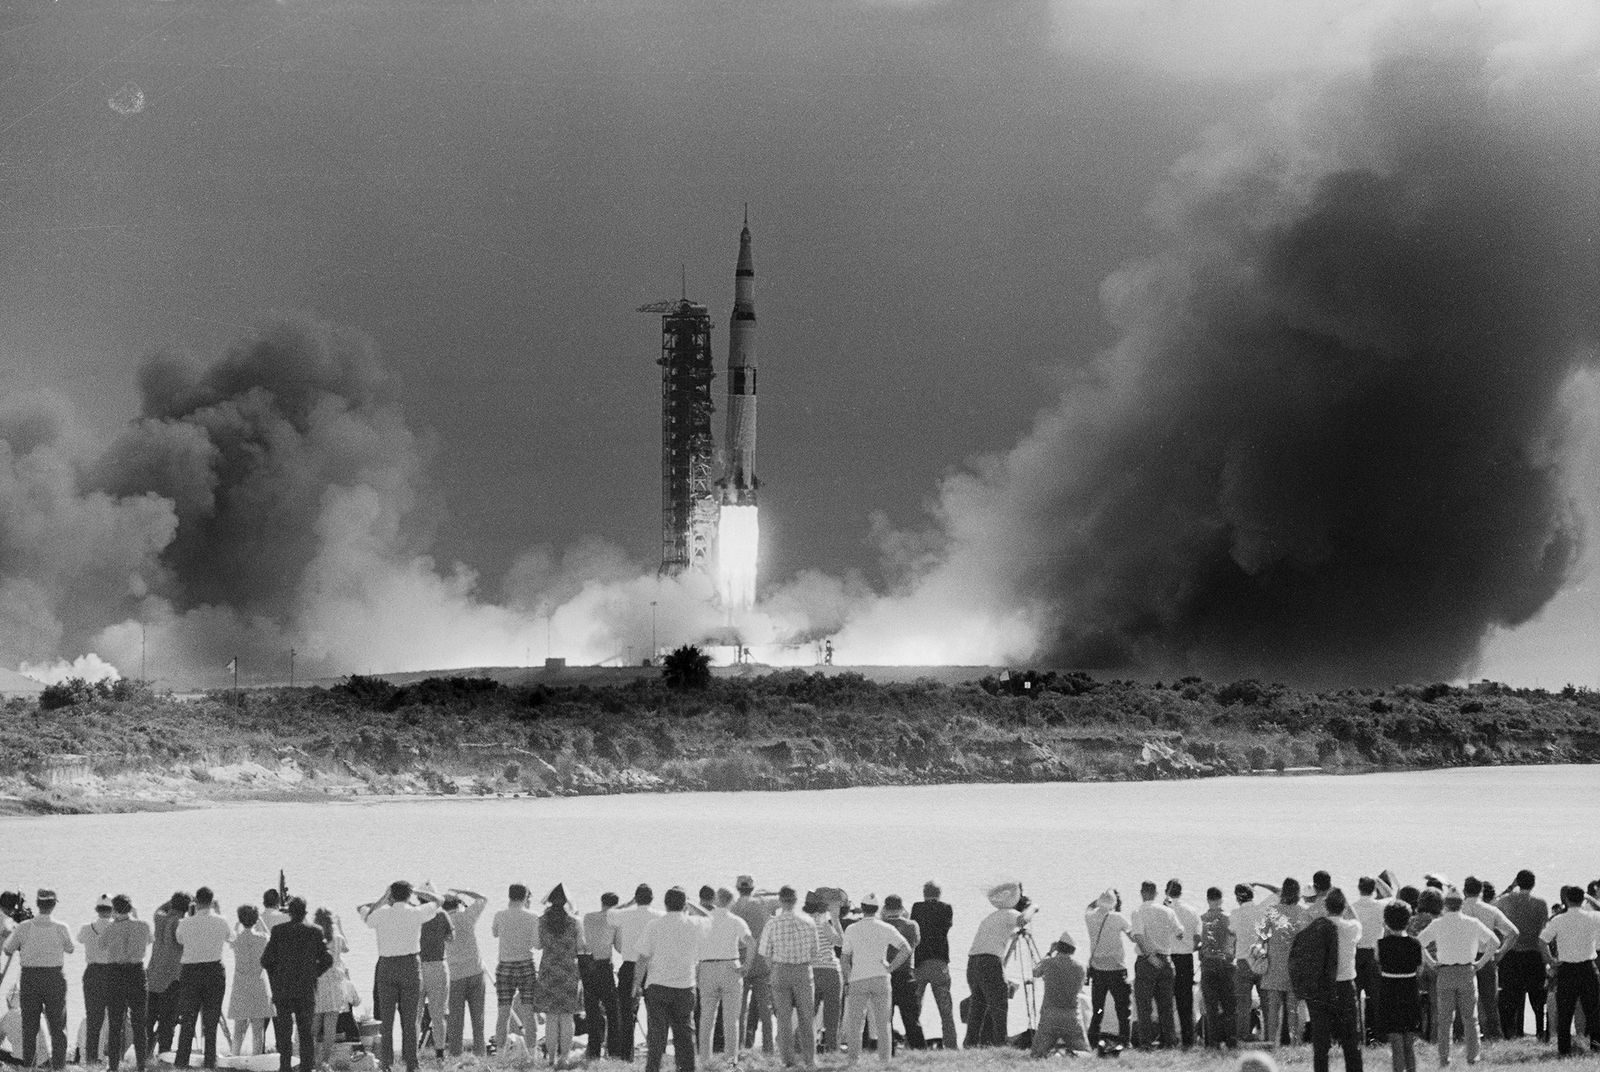 A Celebration in Photographs: 50 favourite images from Apollo 11